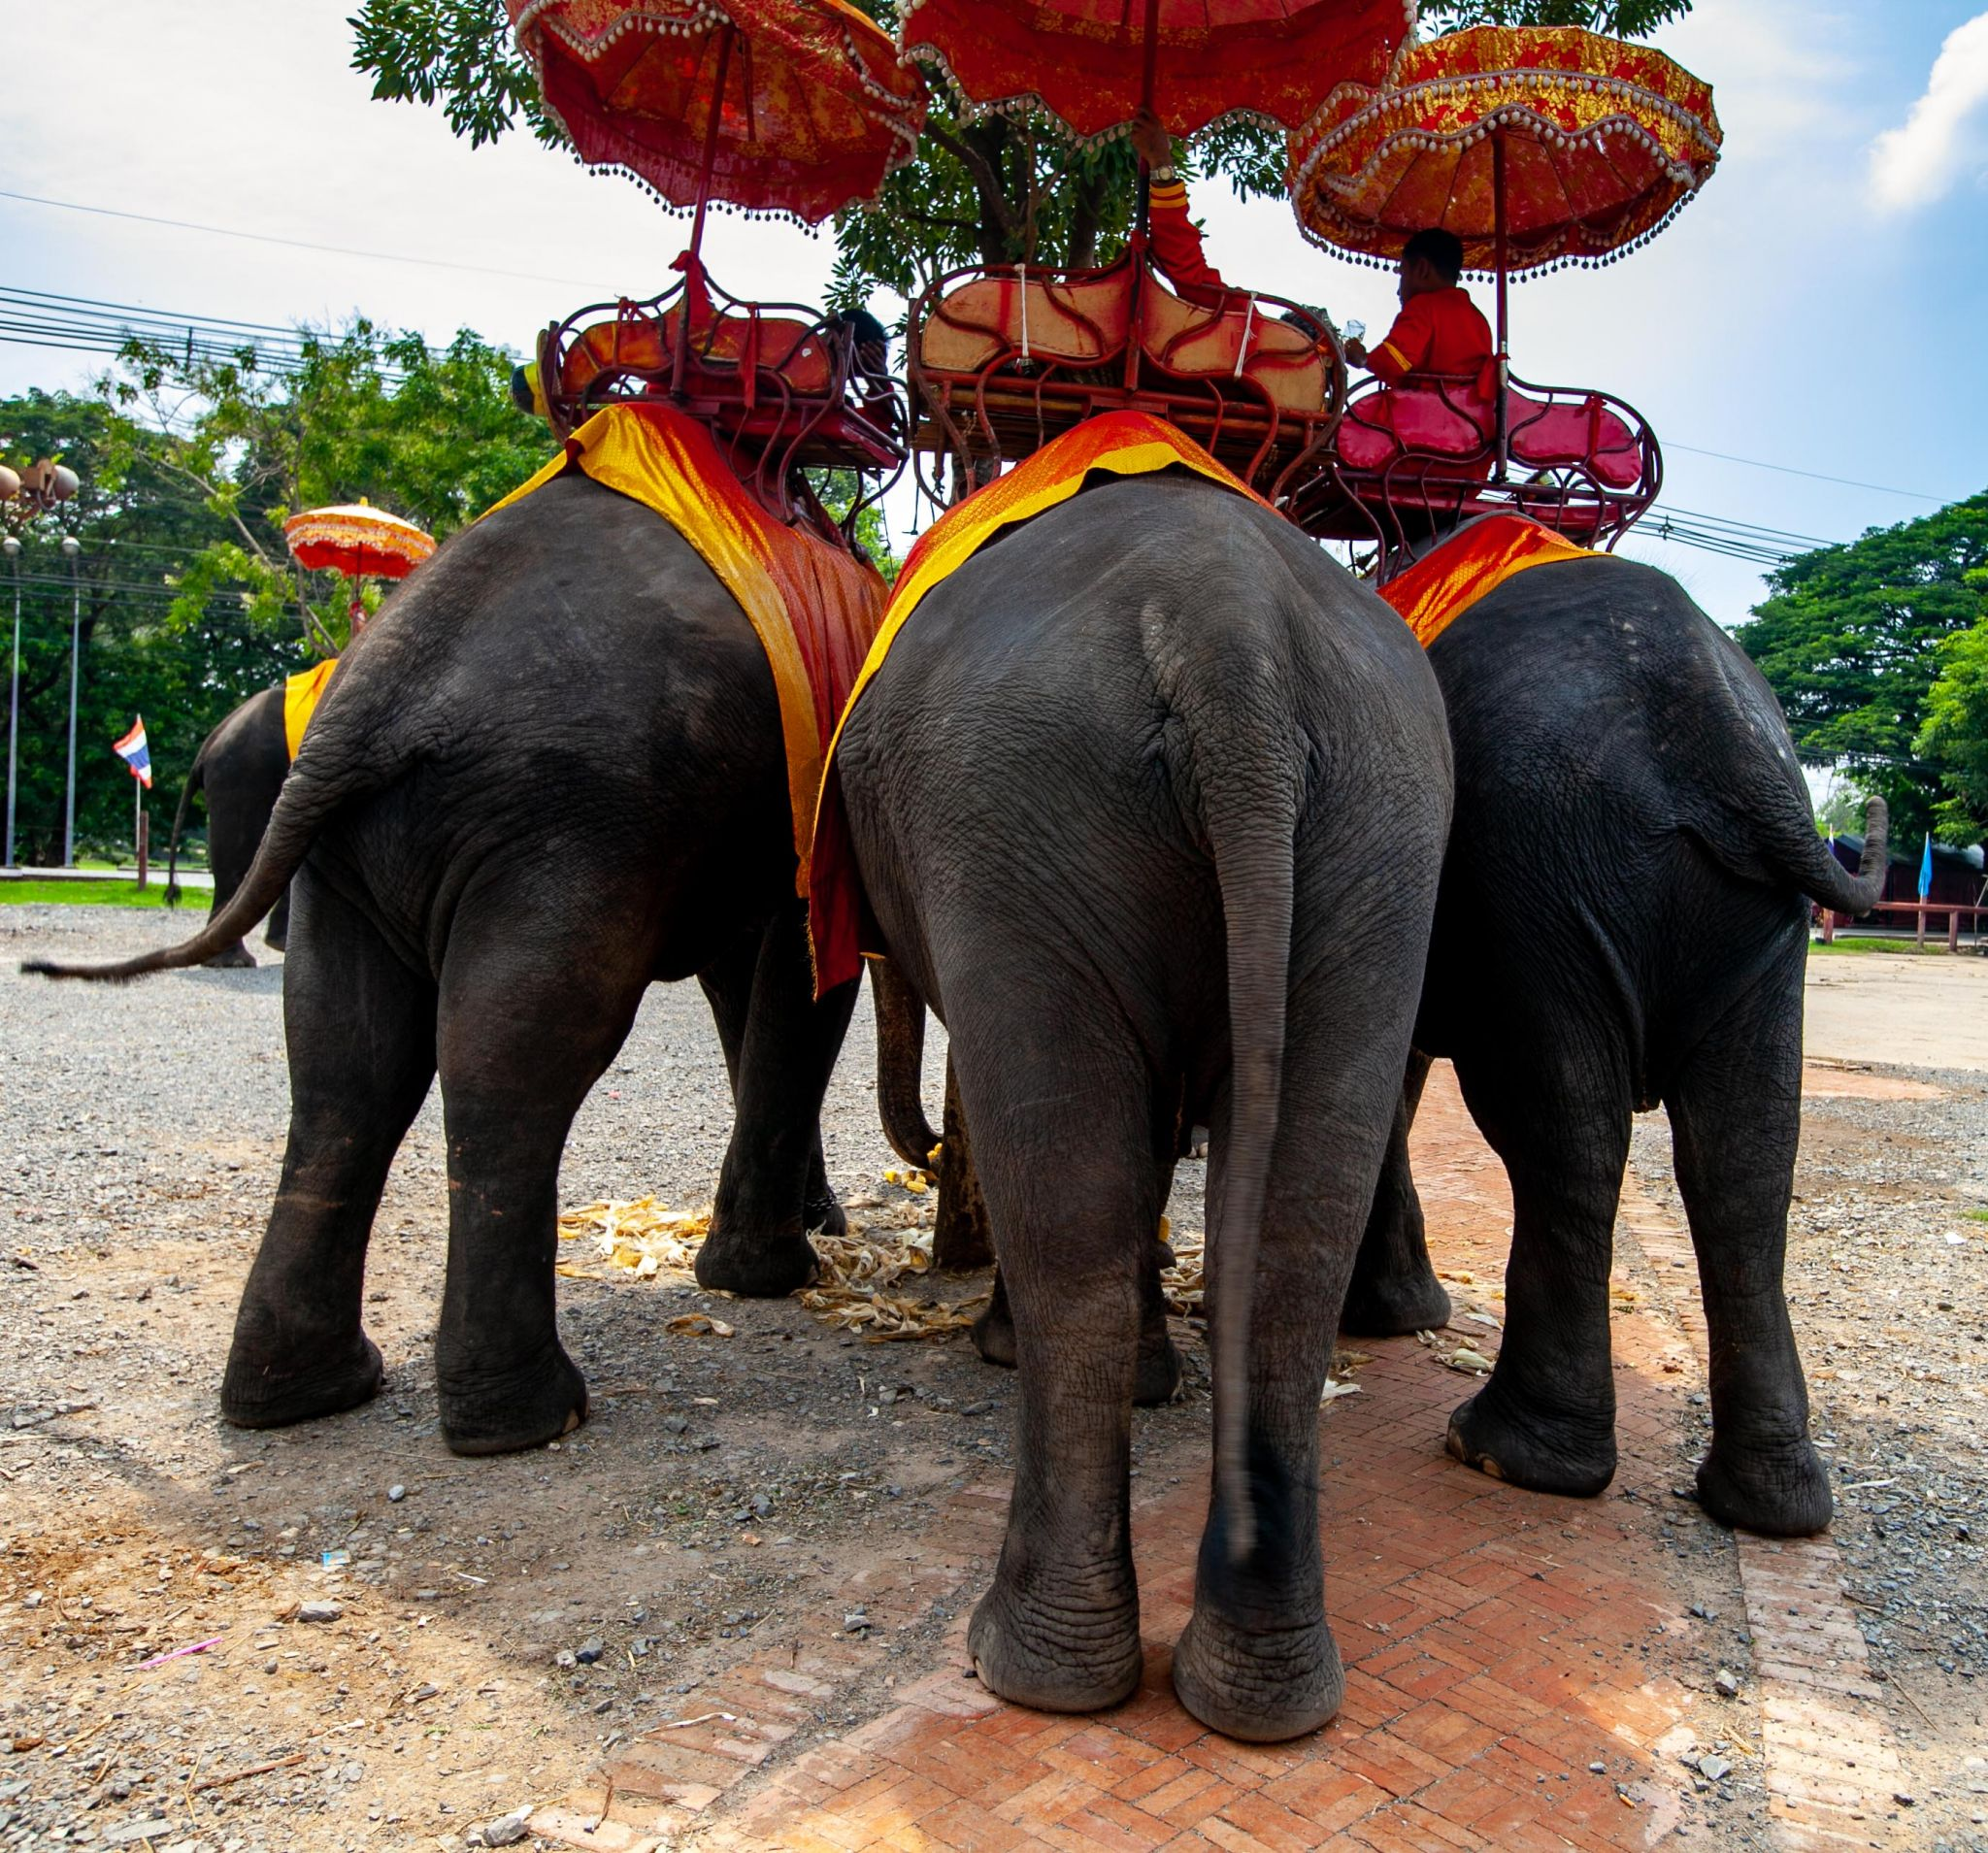 Ayutthaya ancient city elephant rides, Thailand